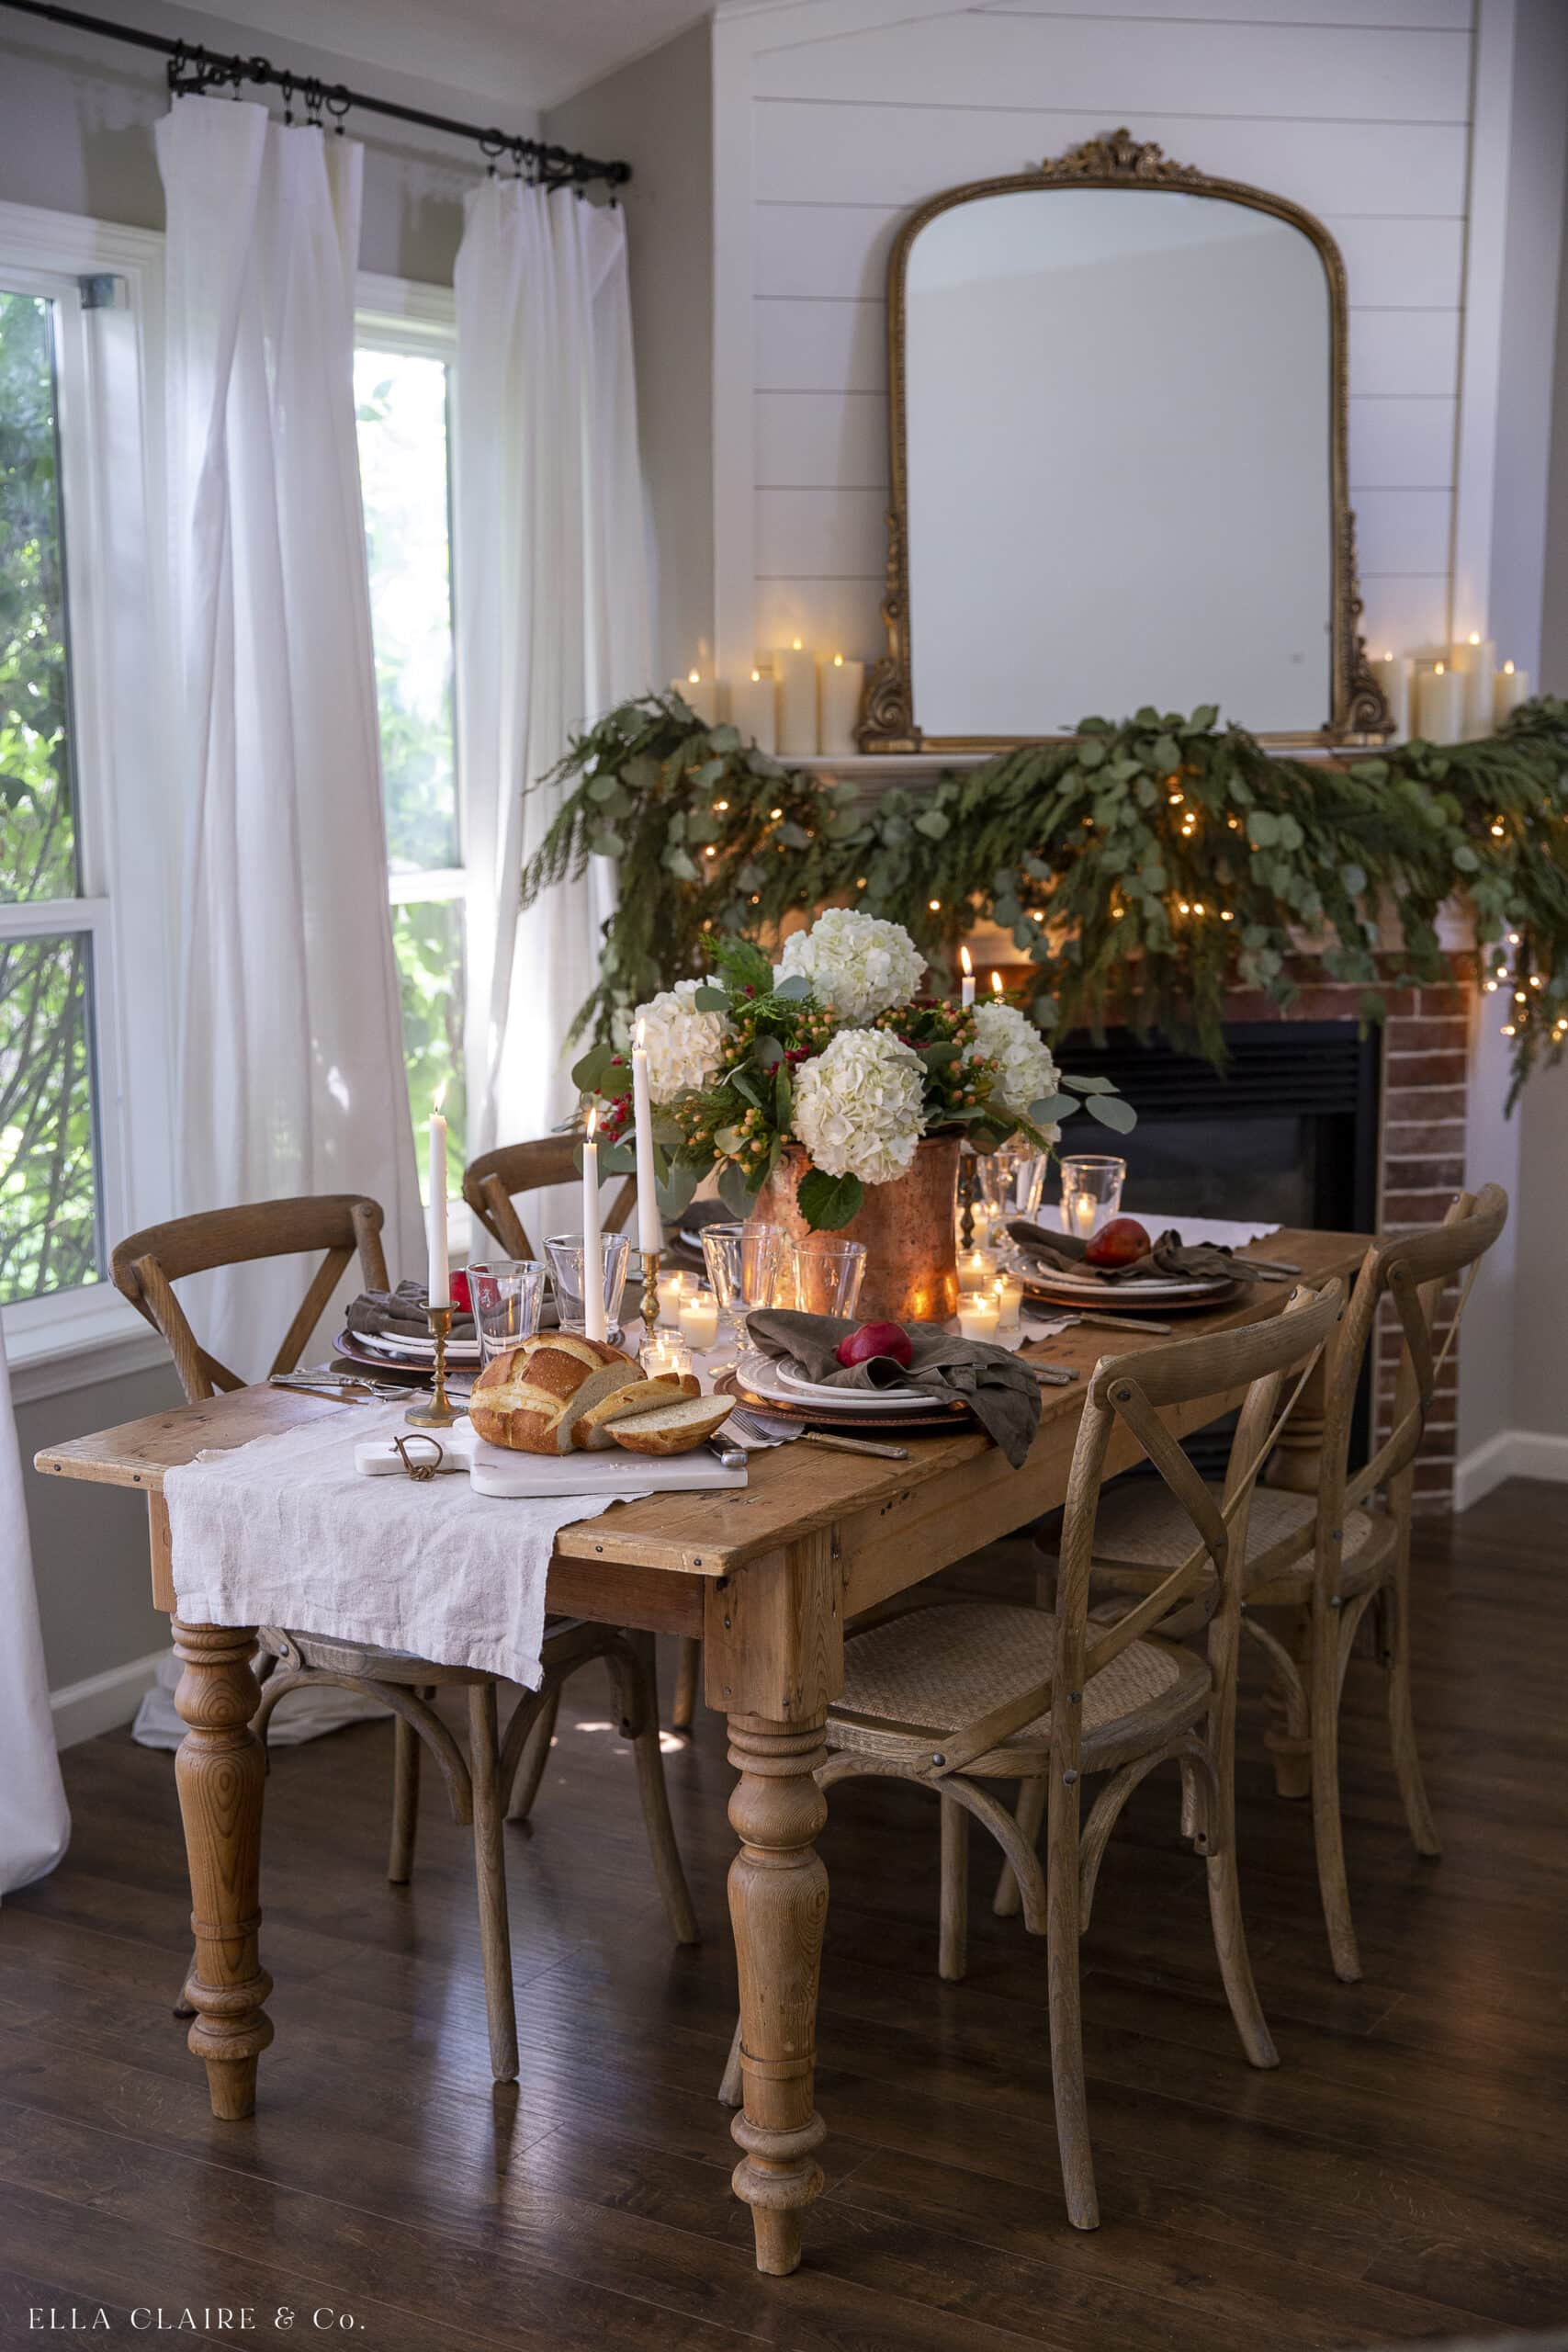 Christmas table with classic vintage decorations